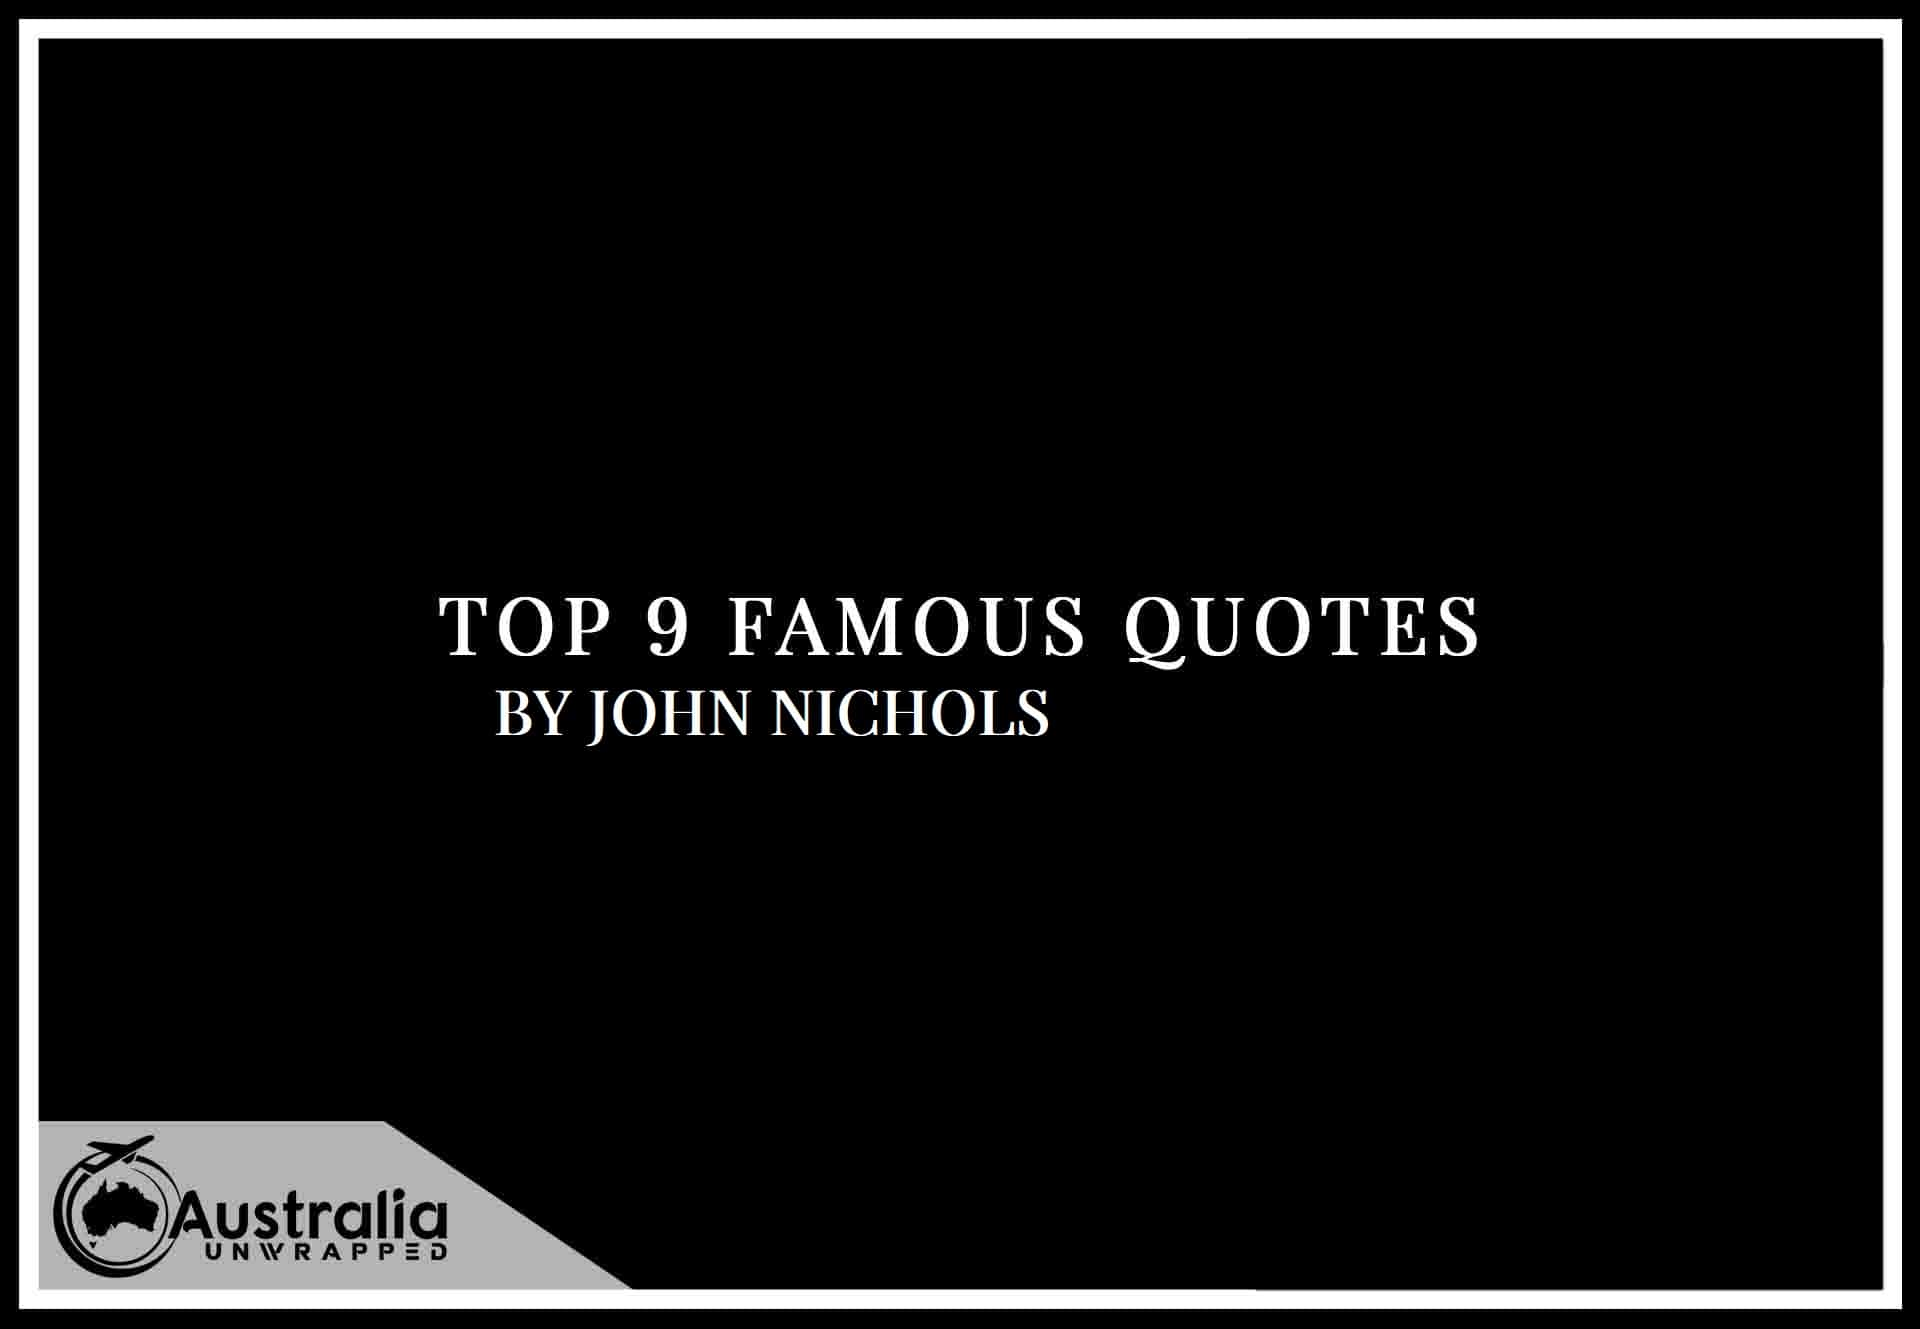 Top 9 Famous Quotes by Author John Nichols